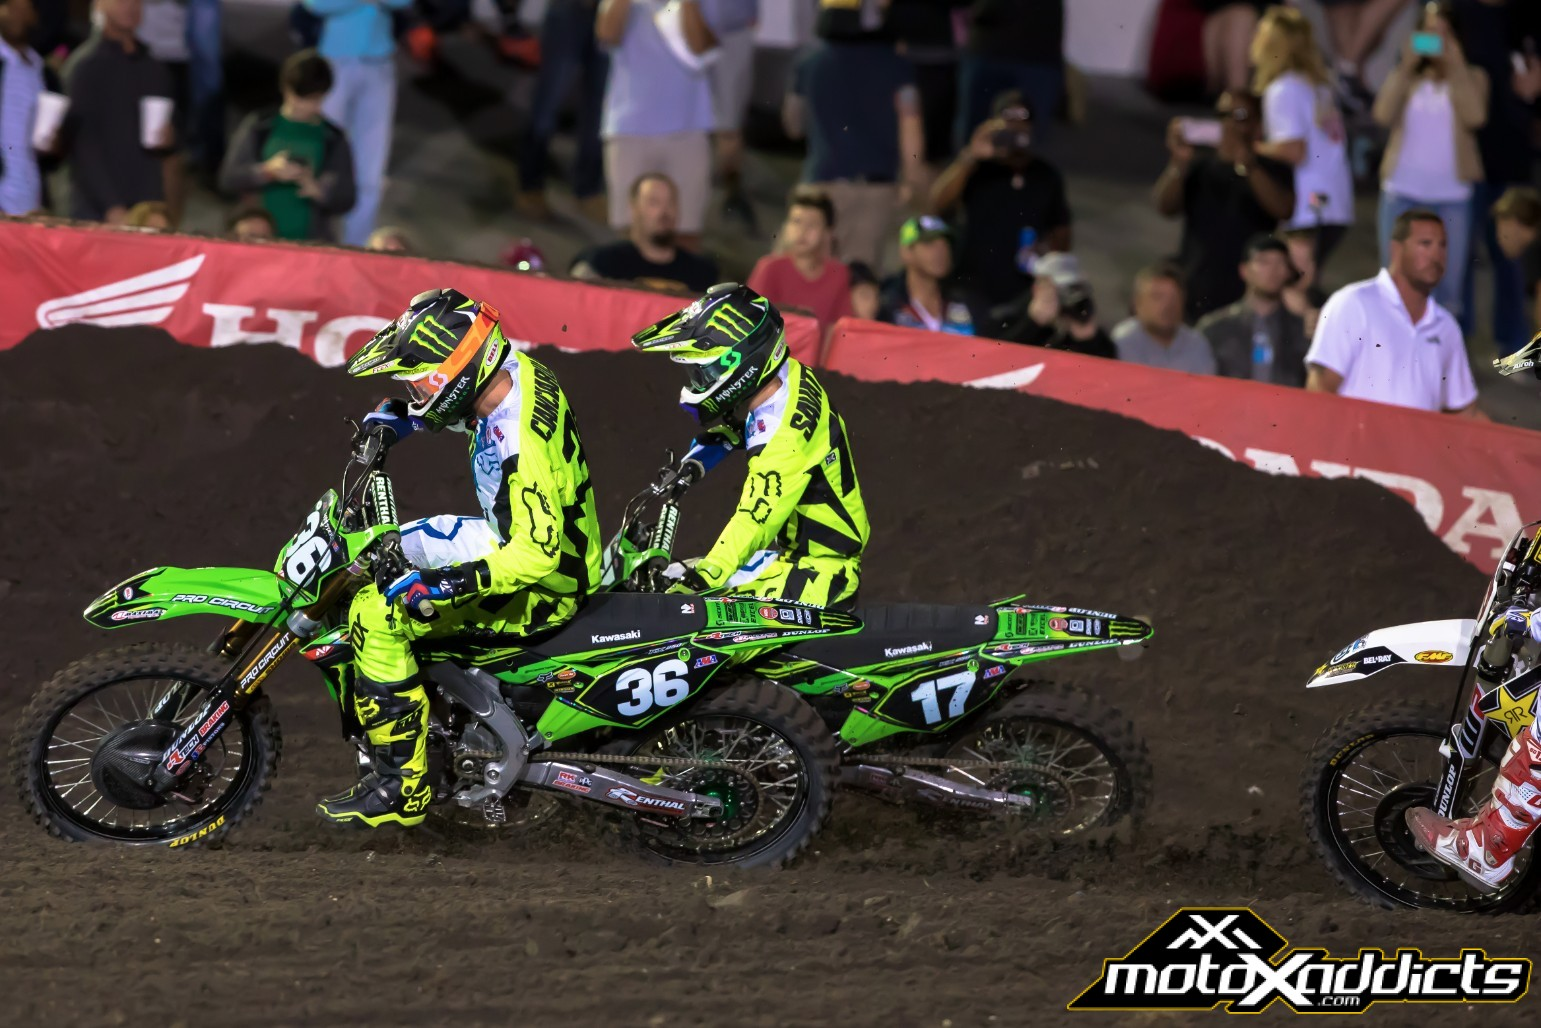 Teammates Adam Cianciarulo (#36) and Joey Savatgy (#17)  started this close and were not much further from each other at the finish.